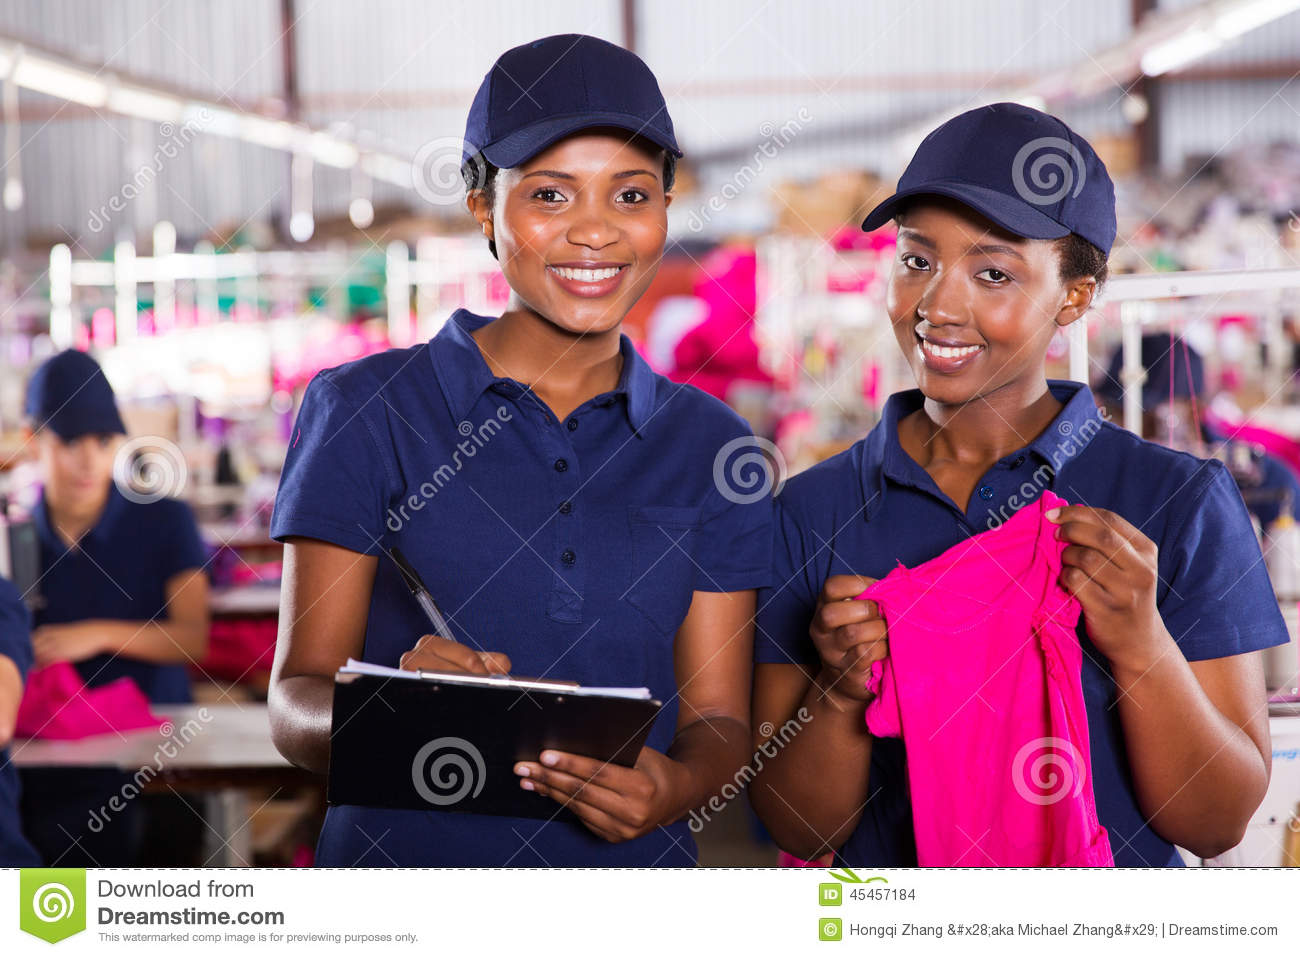 Textile factory co-workers